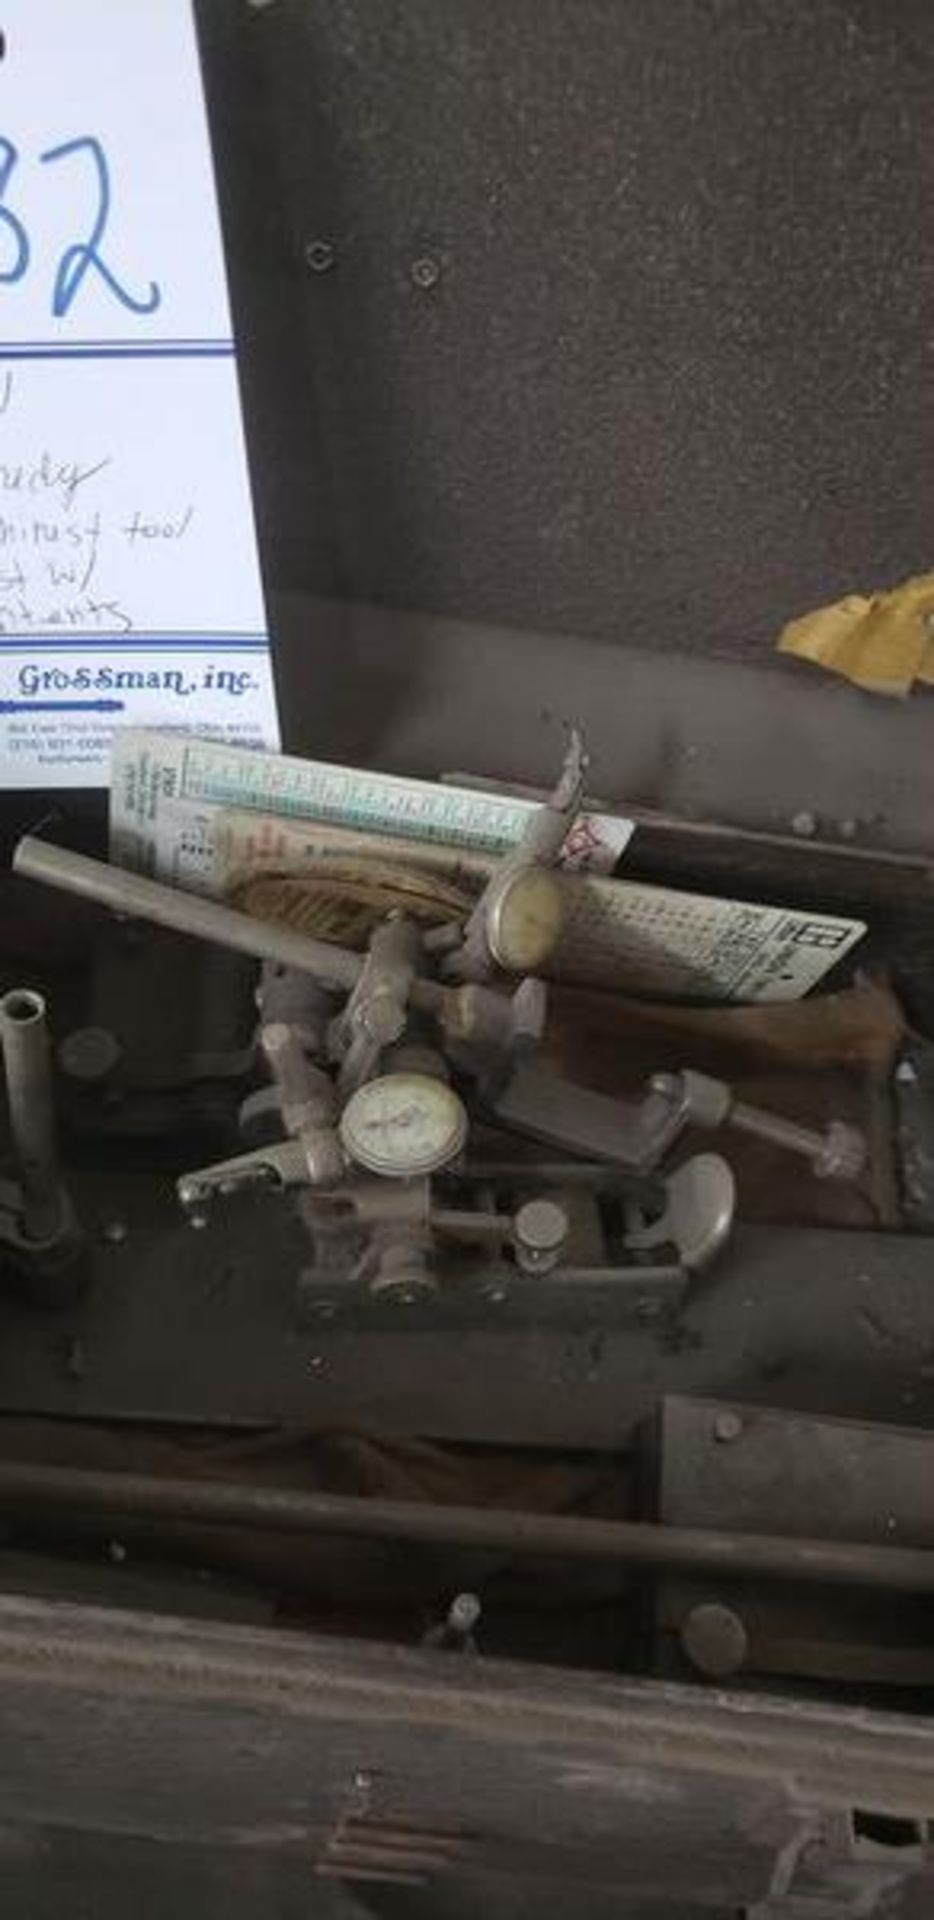 KENNEDY MACHINIST TOOL CHEST WITH CONTENTS - Image 3 of 11